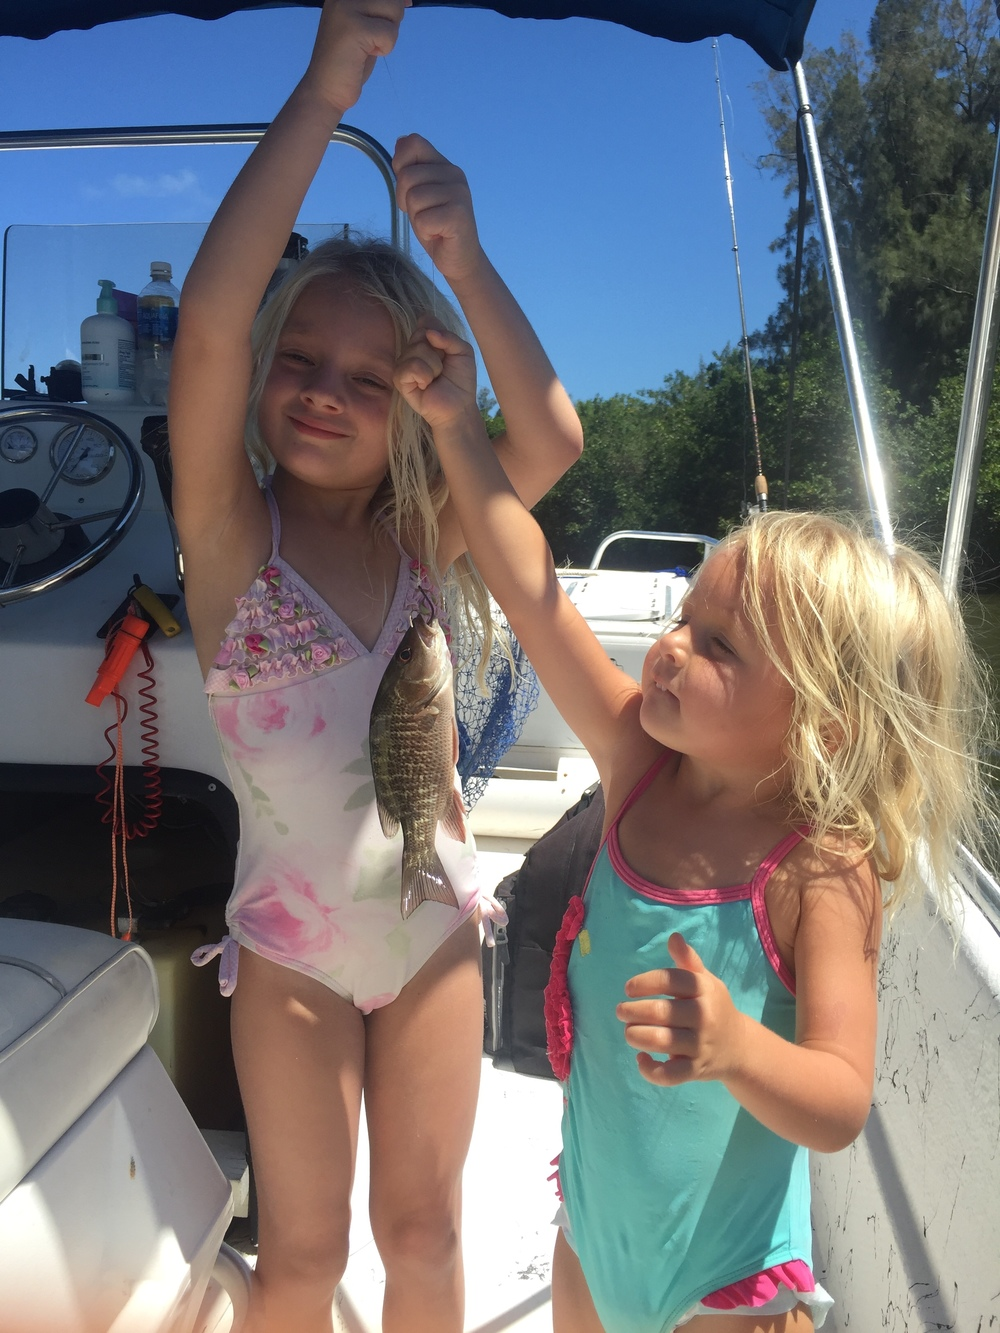 The next generation of professional fishers.